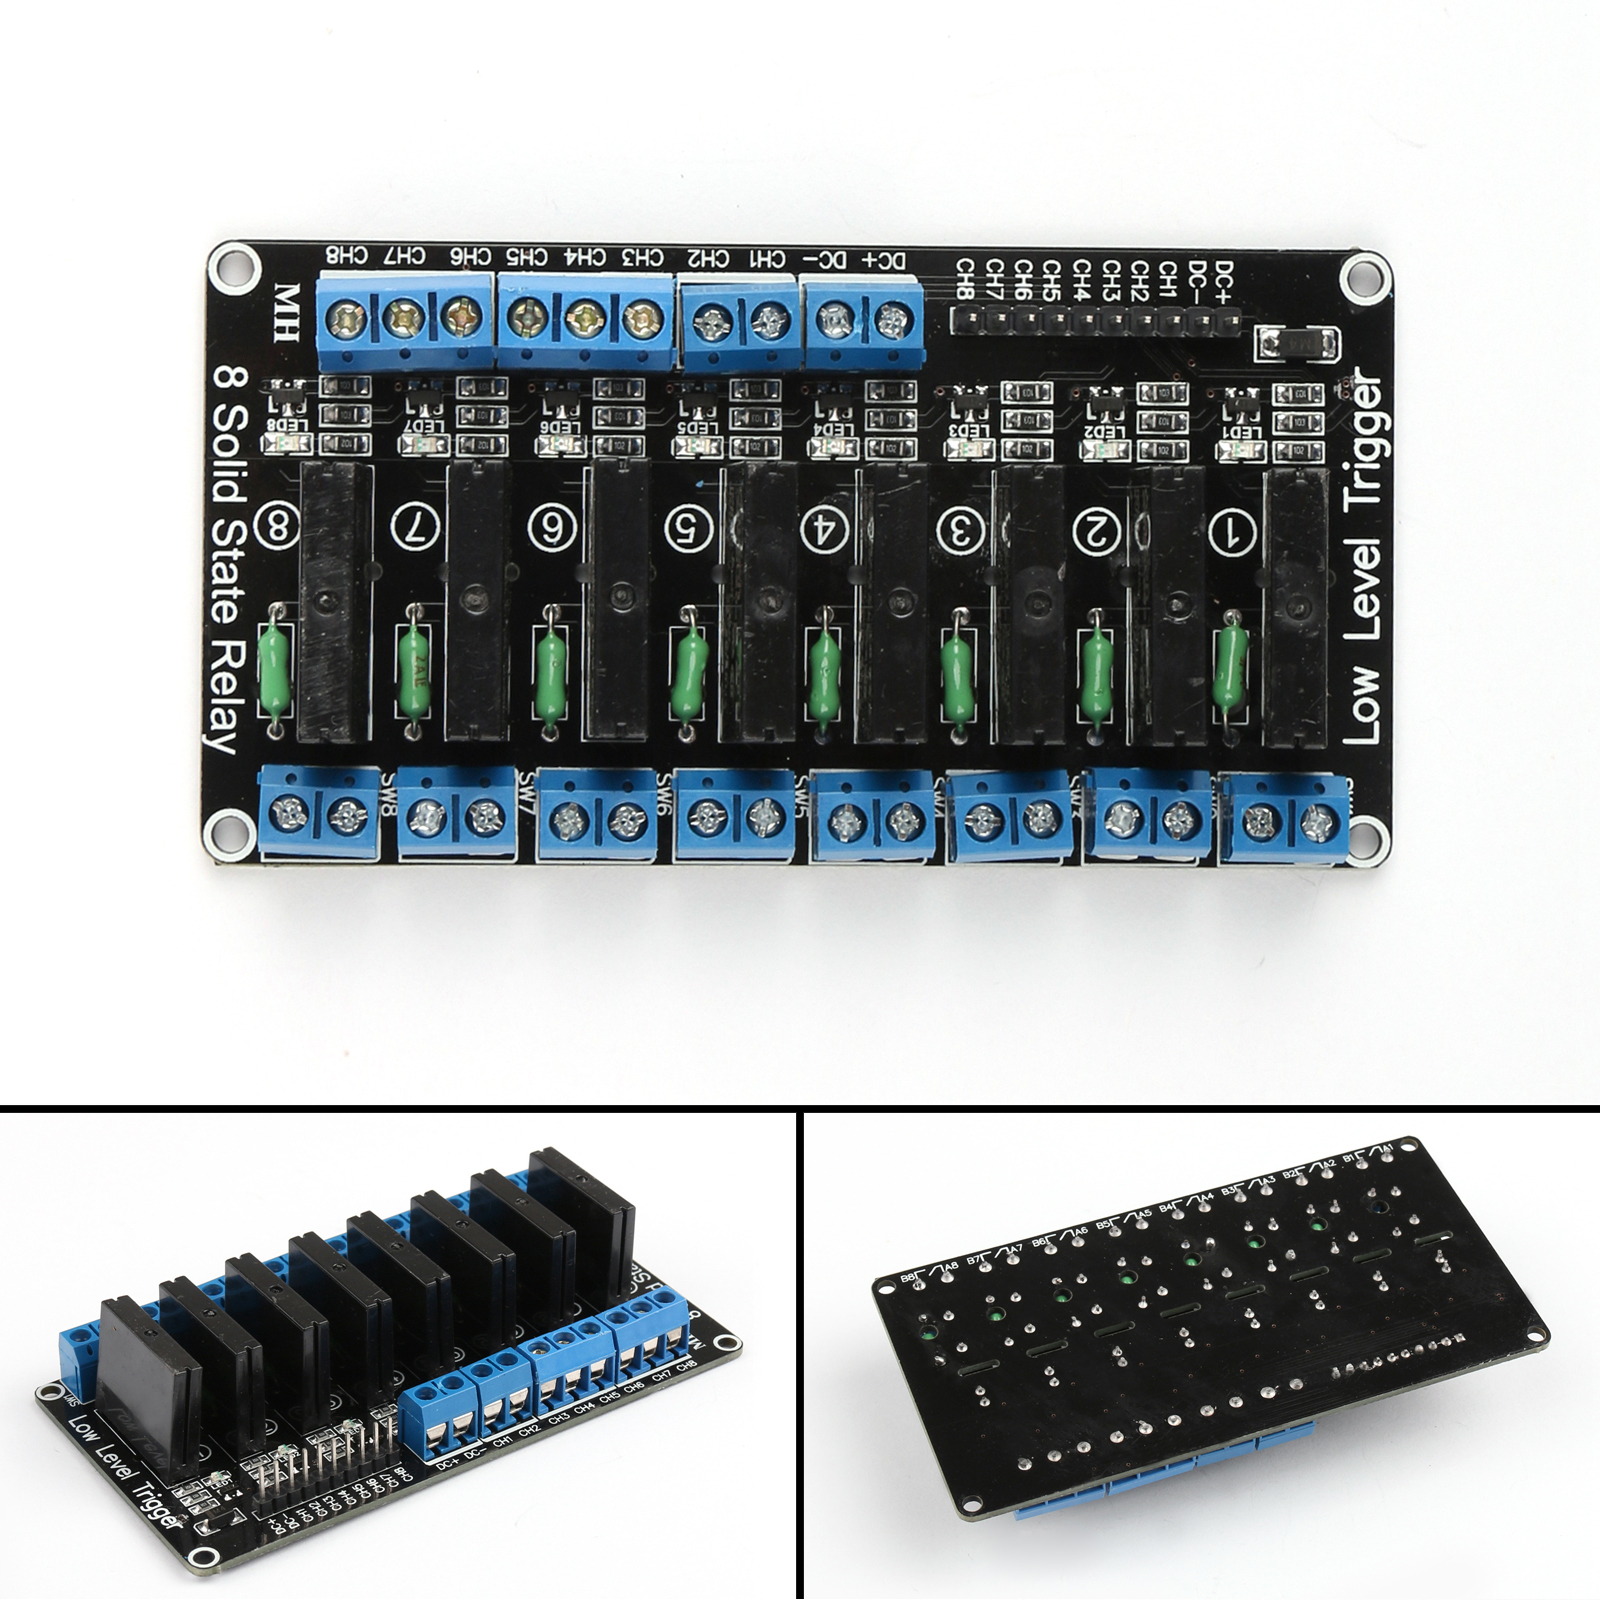 5v 8 Channel Ssr Solid State Relay Module 830 P Breadboard Jump Reprap 100 Brand New And High Quality Shape Same As The Picture Show